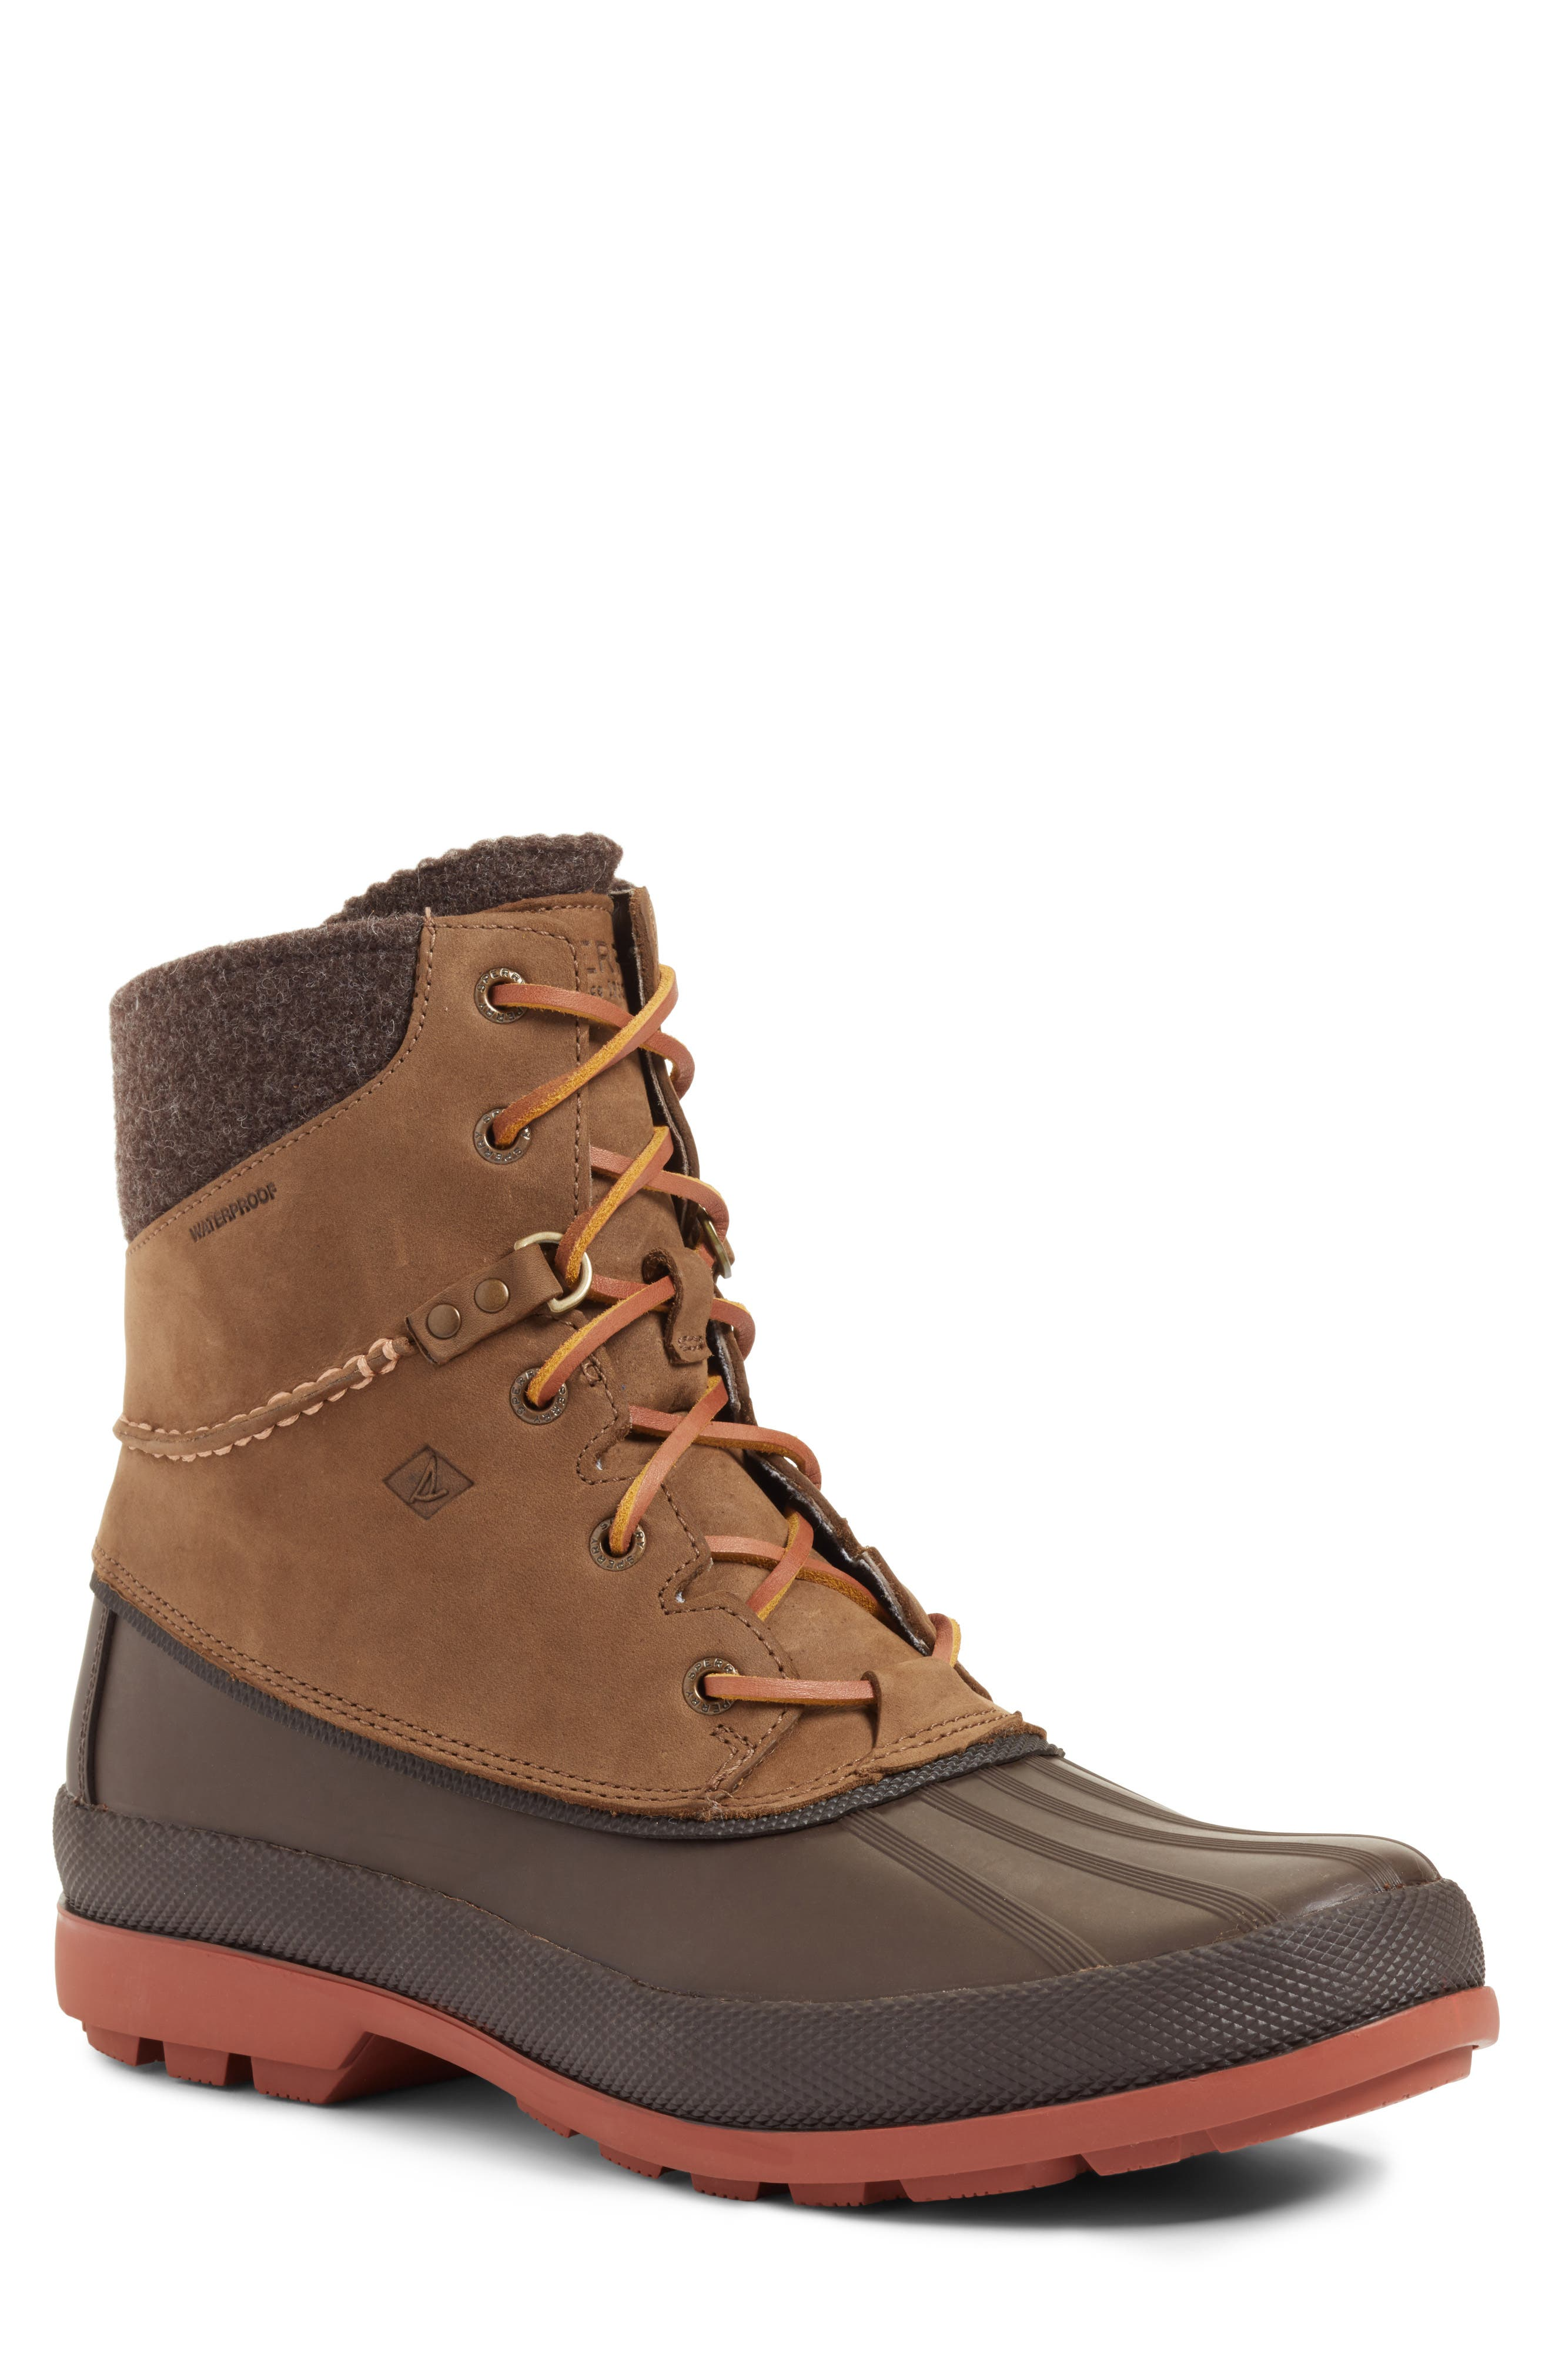 Cold Bay Duck Boot,                         Main,                         color, 201